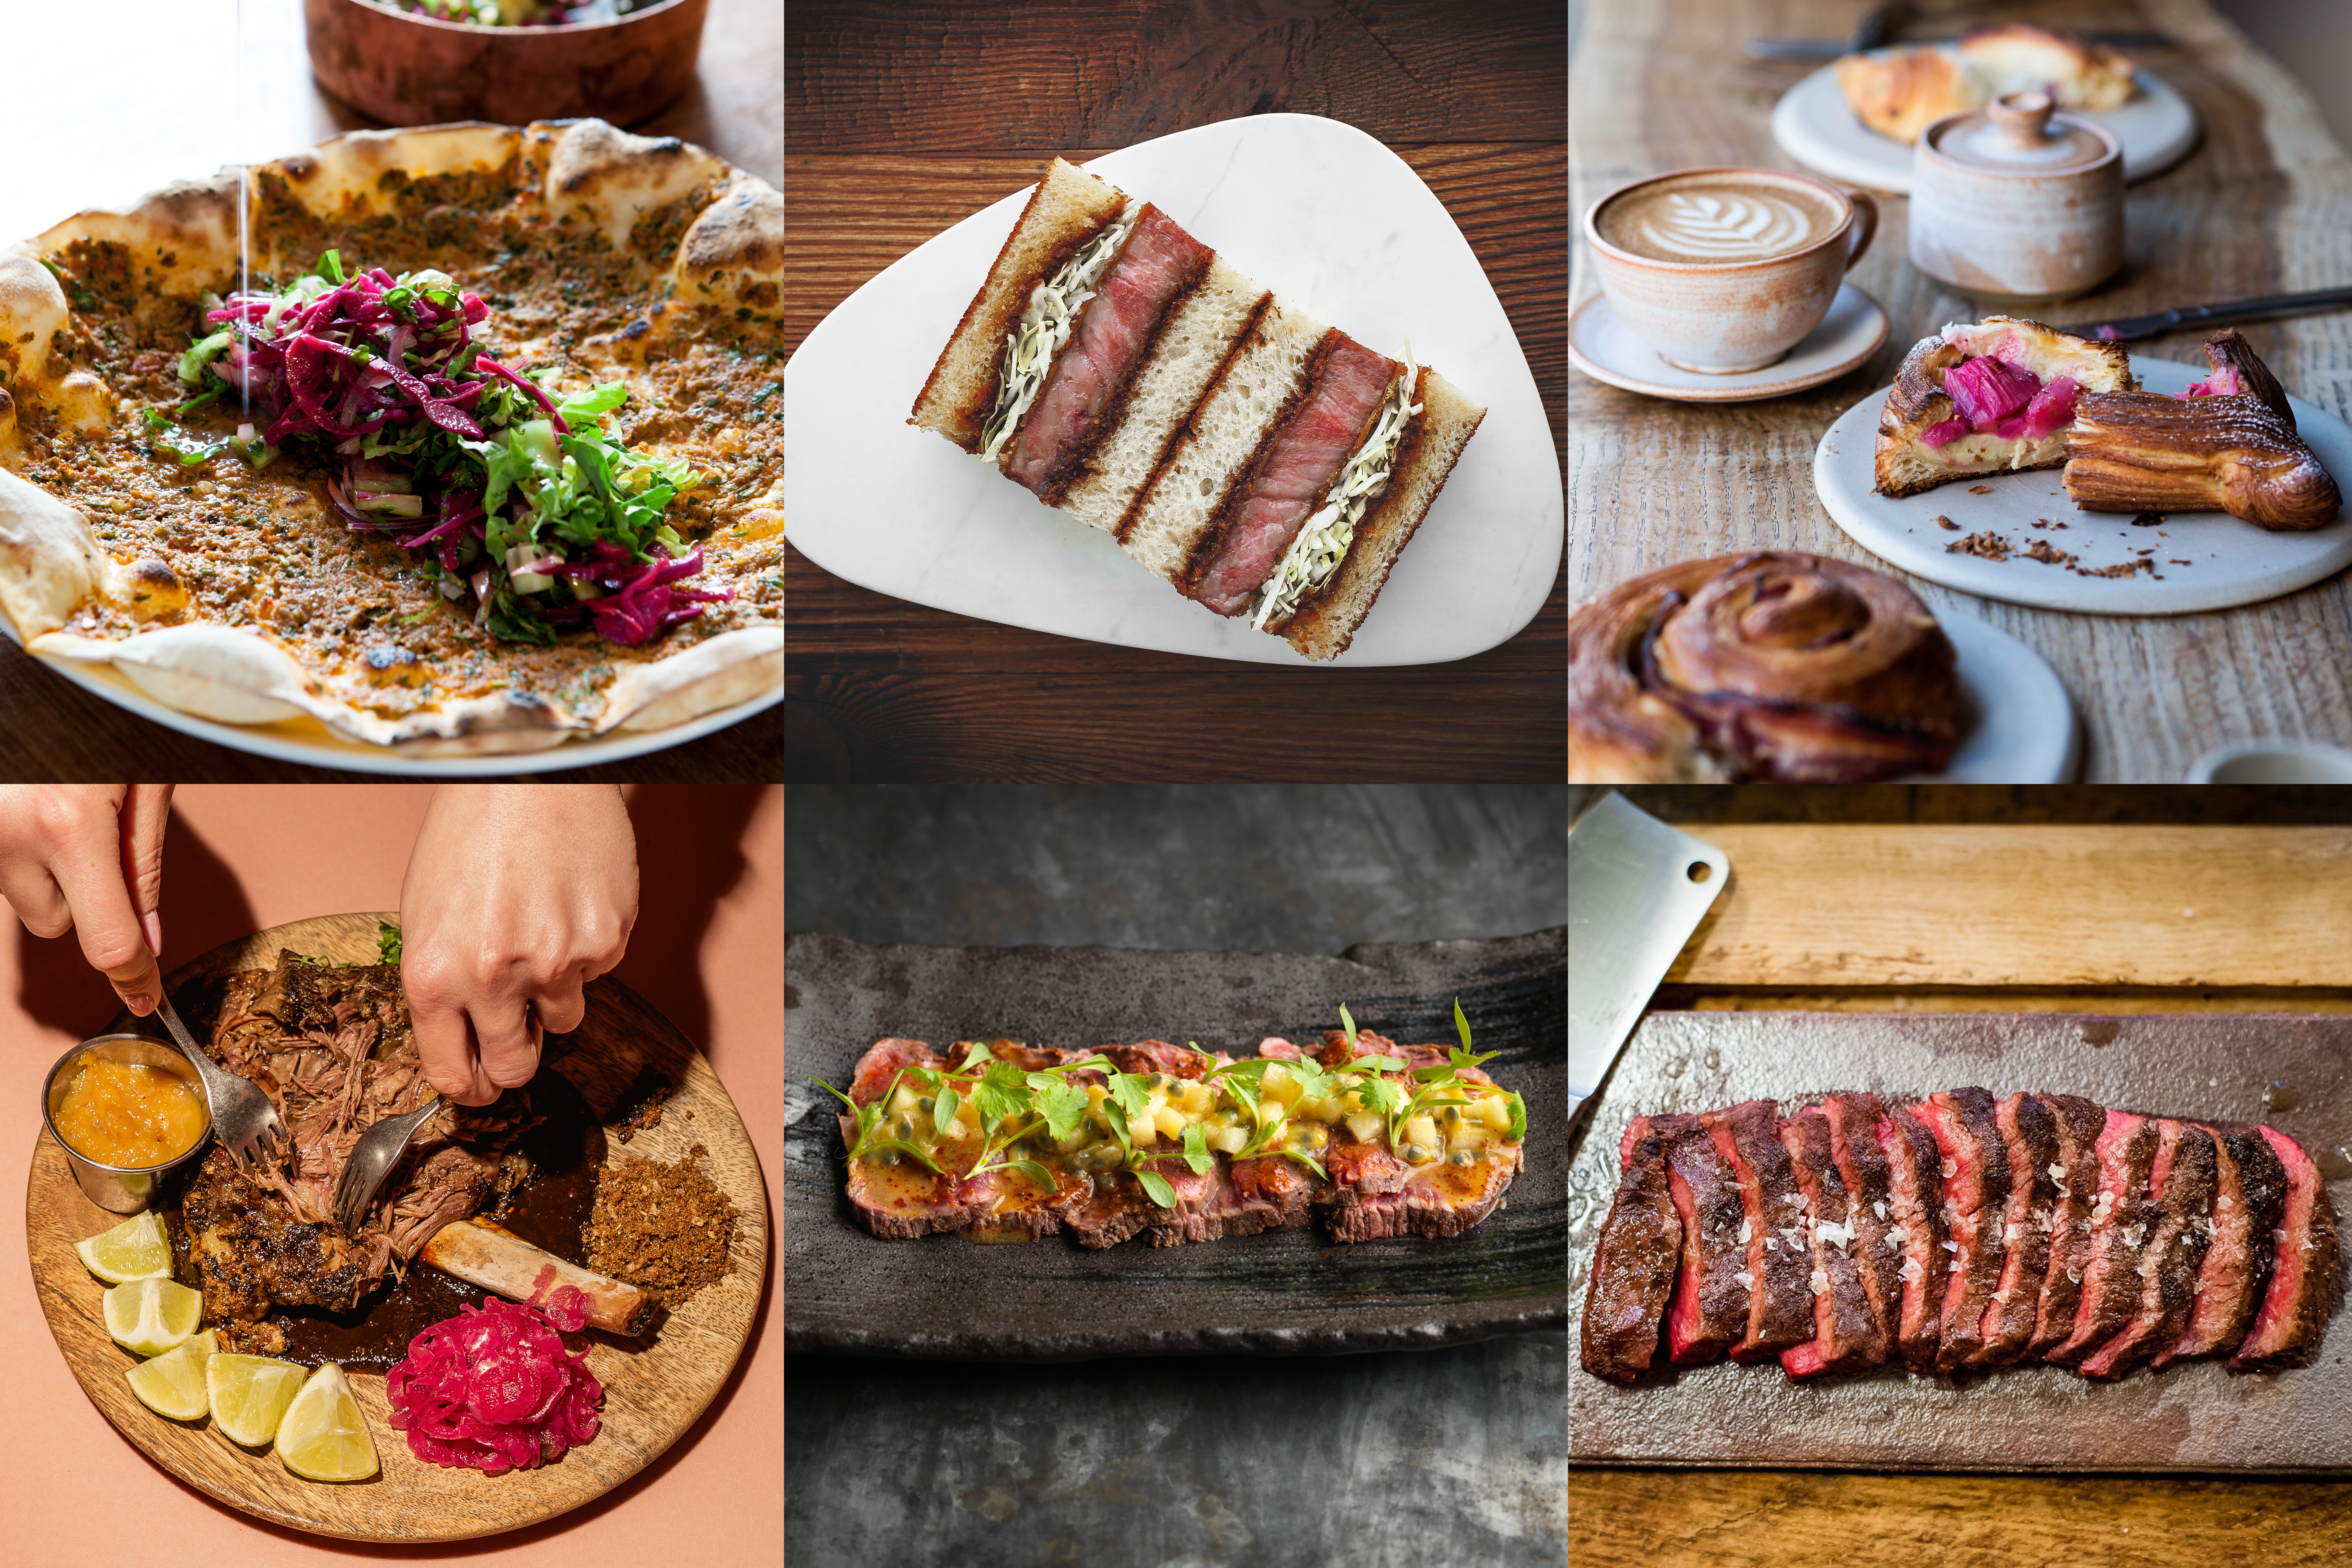 Arcade Food Theatre food hall at Centre Point brings some of London's best restaurants to Tottenham Court Road